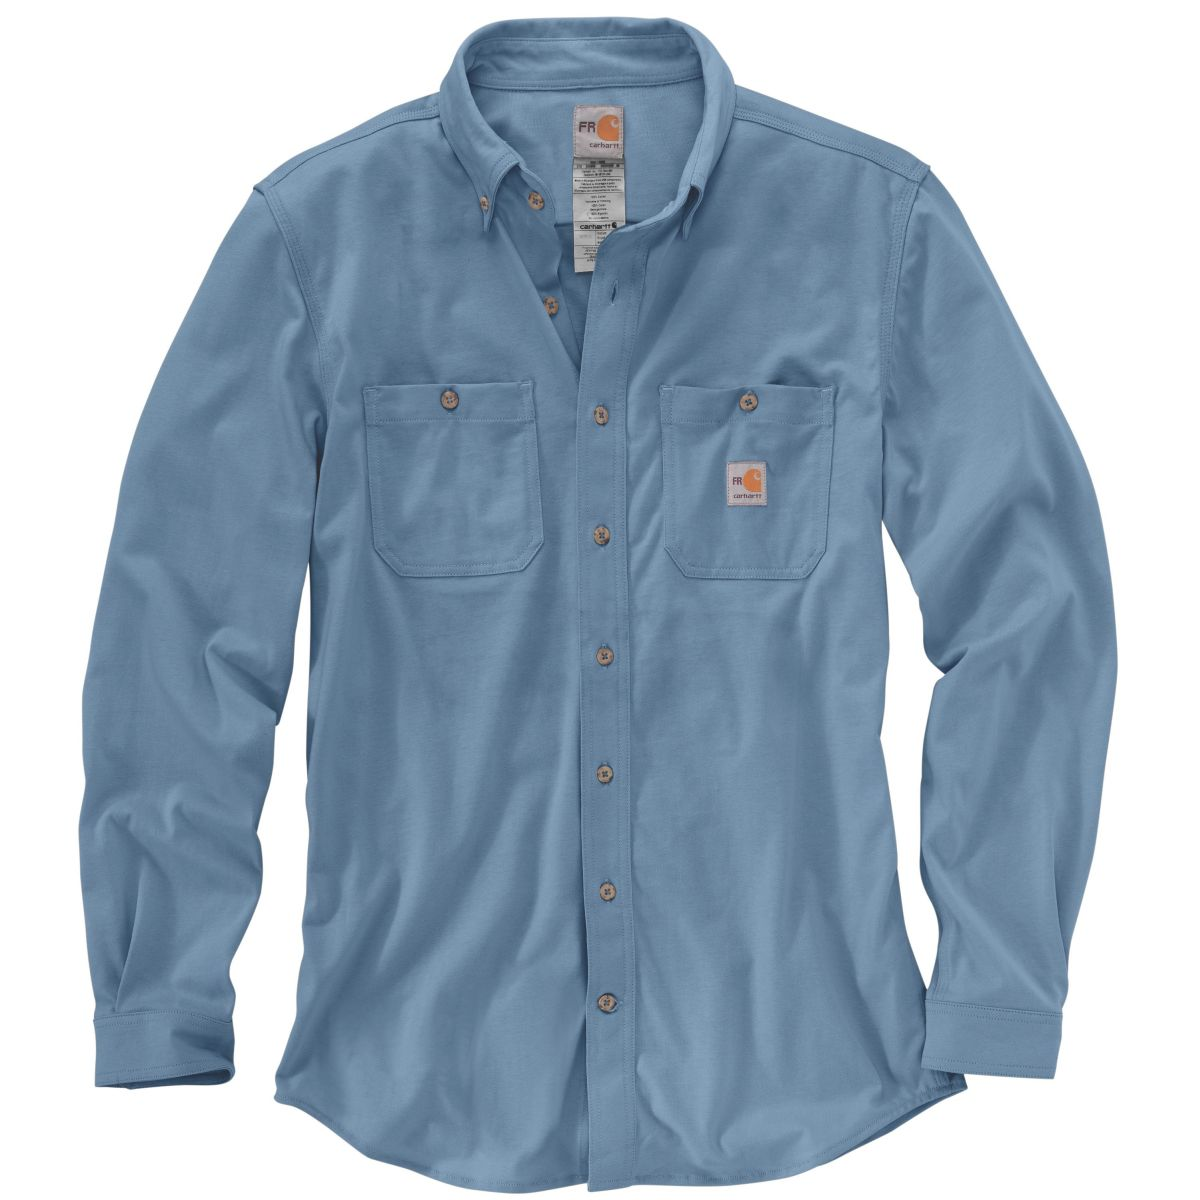 Carhartt Men's FR Force Cotton Hybrid Shirt-Carhartt